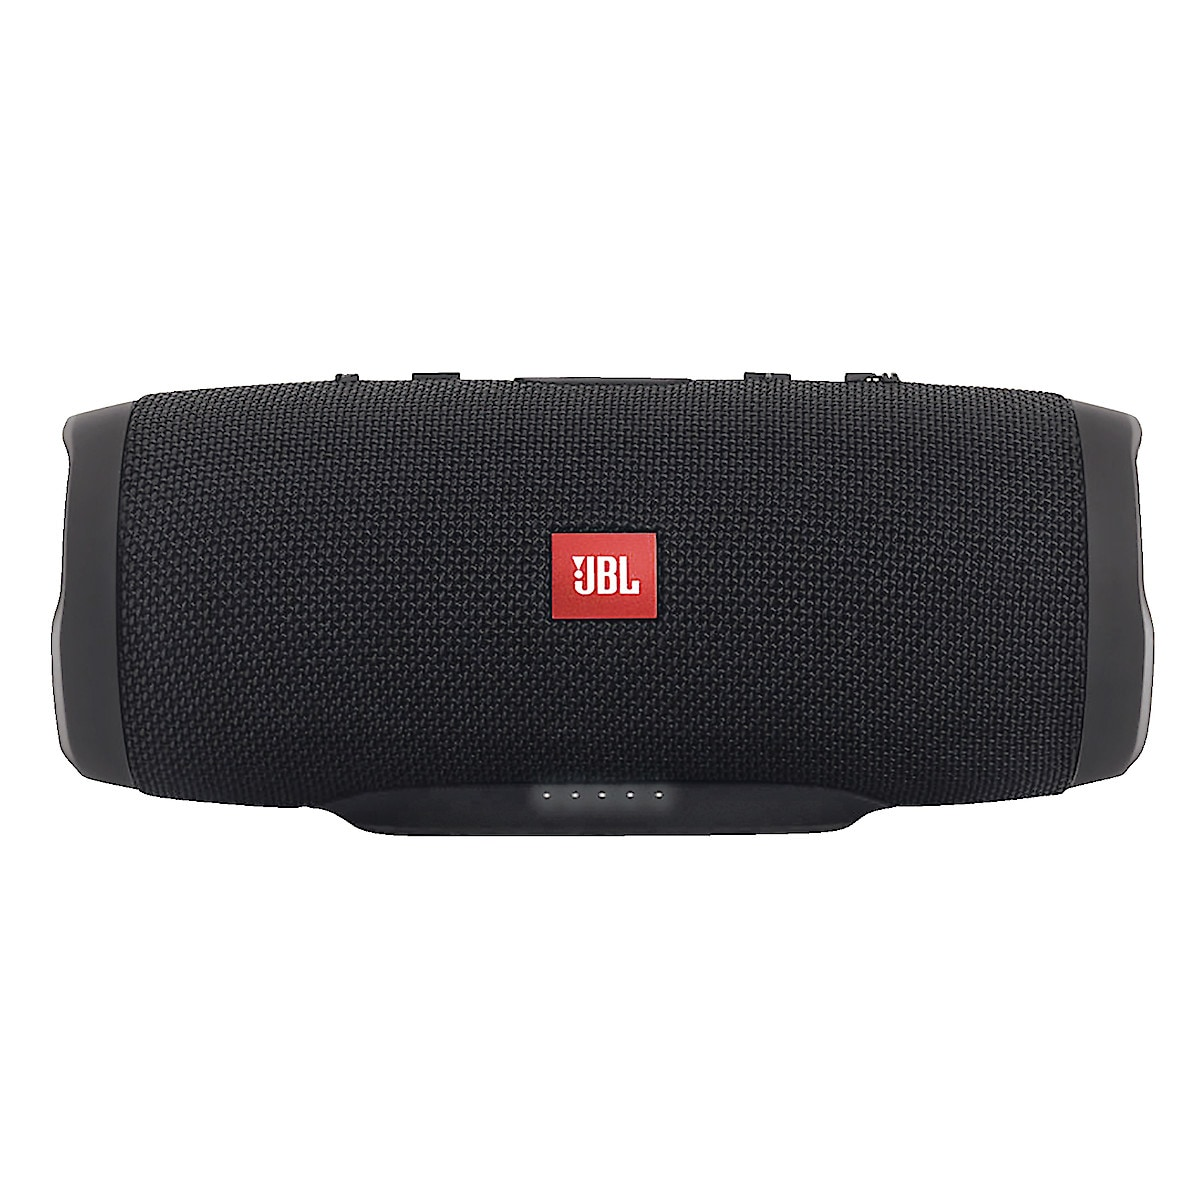 Kaiutin JBL Charge 3 Stealth